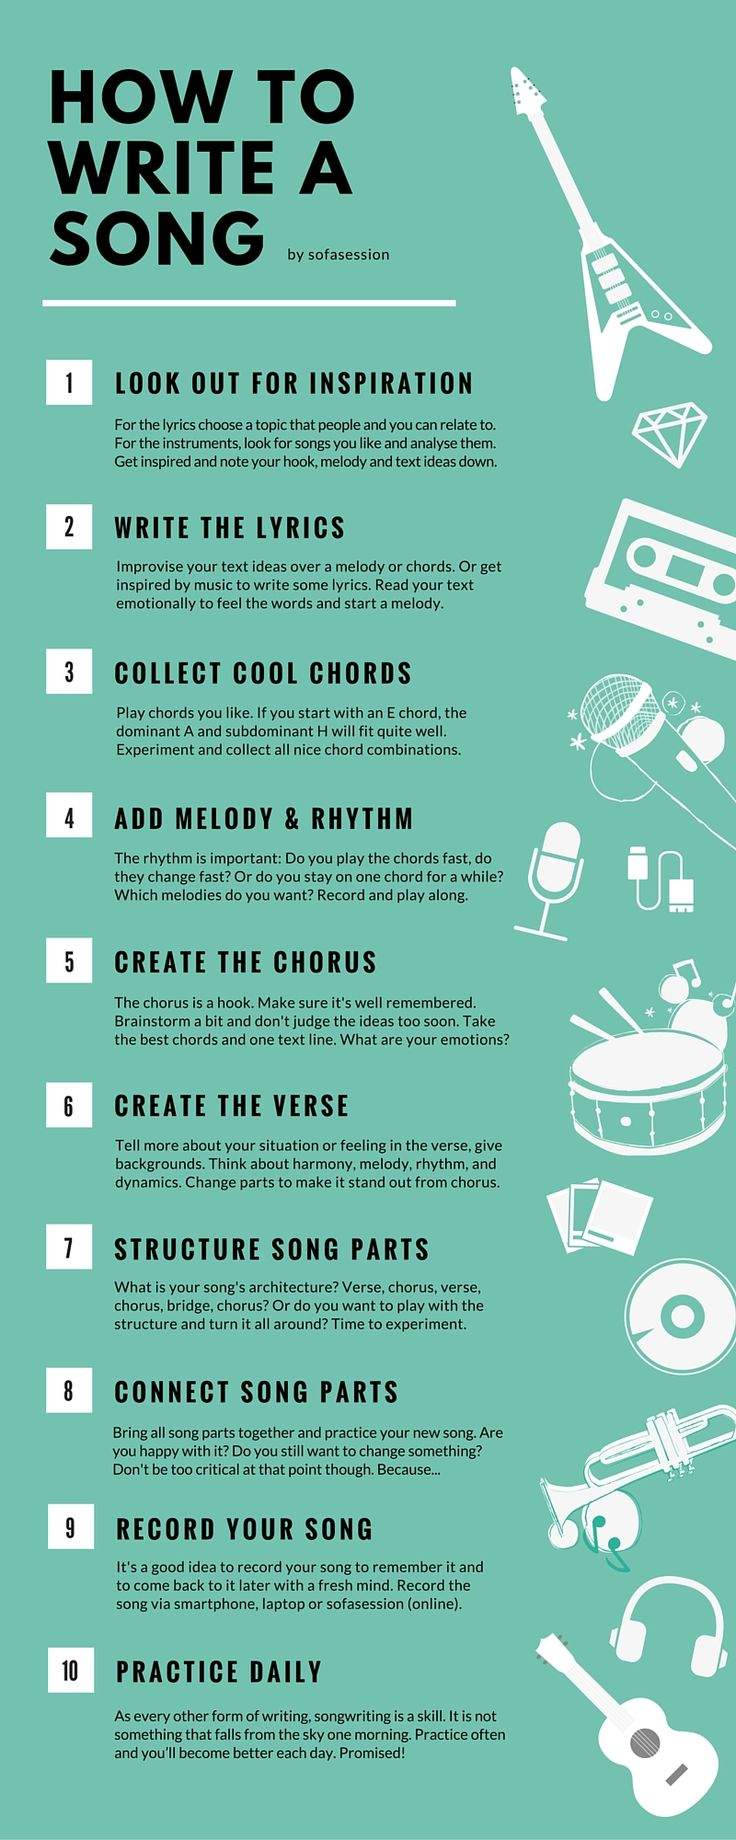 How to Sing Rap Song Easily - BecomeSingers.Com